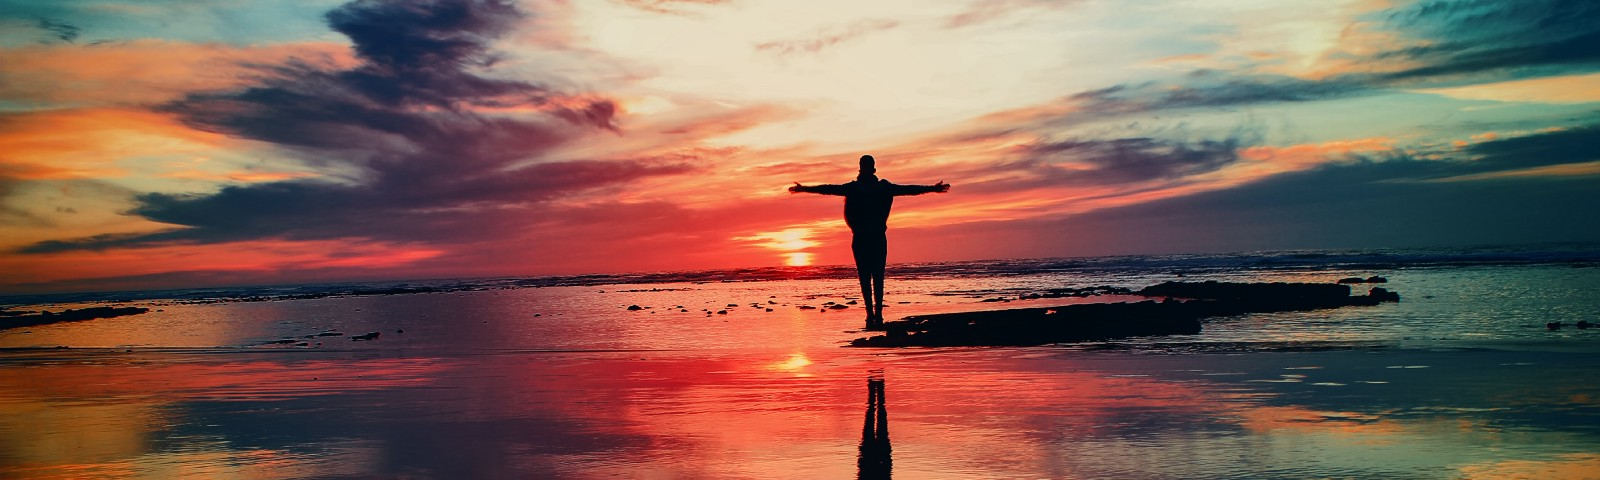 A silhouetted figure stands with arms outstretched against a striking blue/red sunset backdrop with reflective sandy ground.